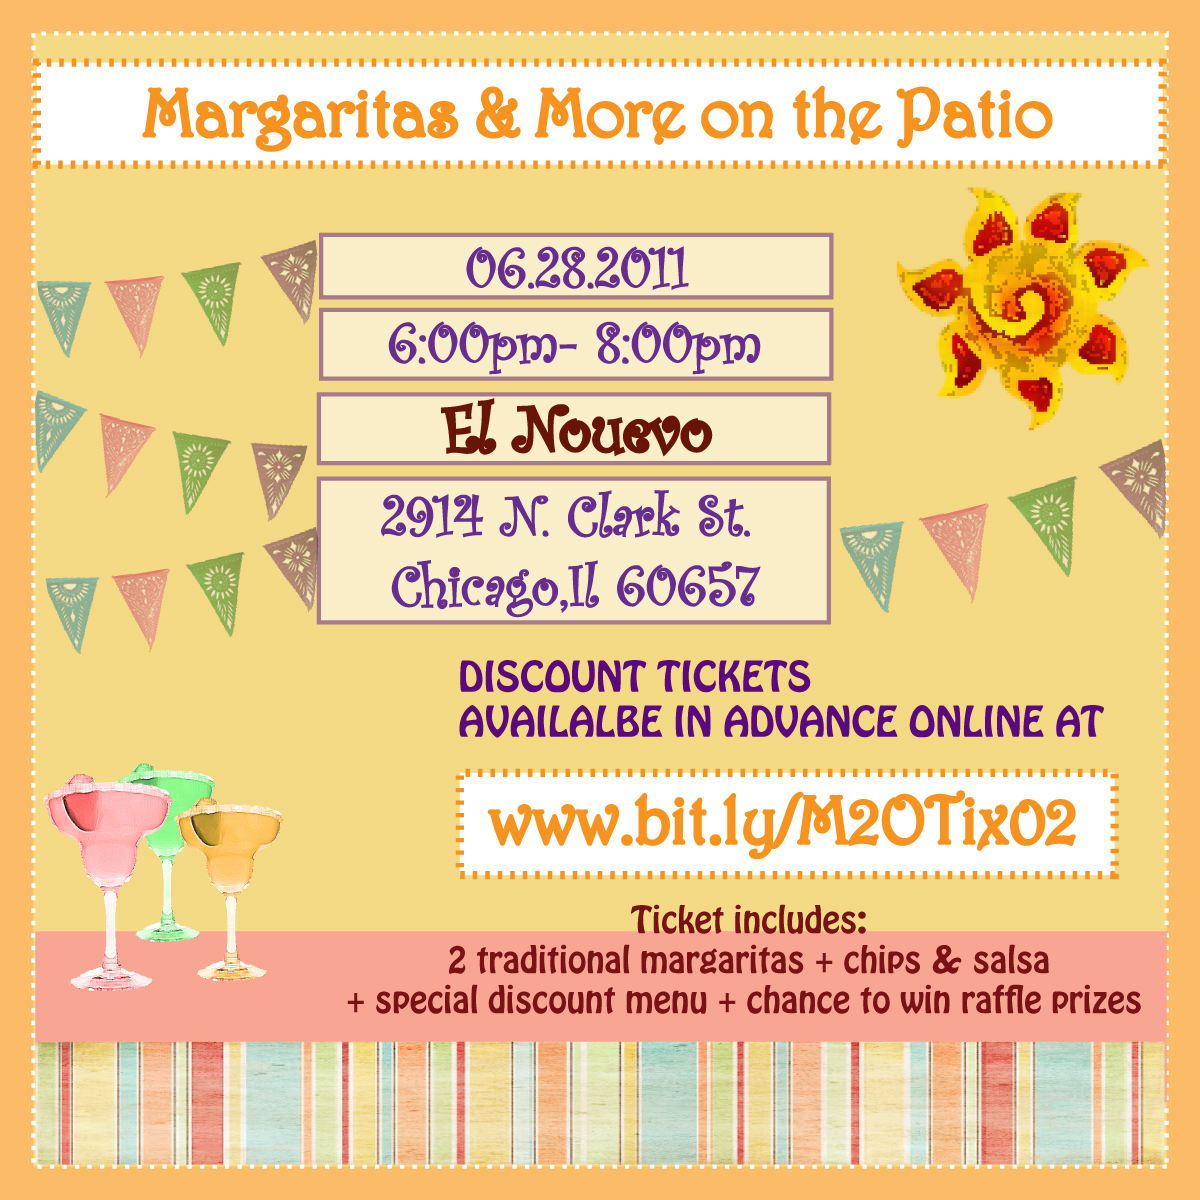 Margaritas & More on the Patio